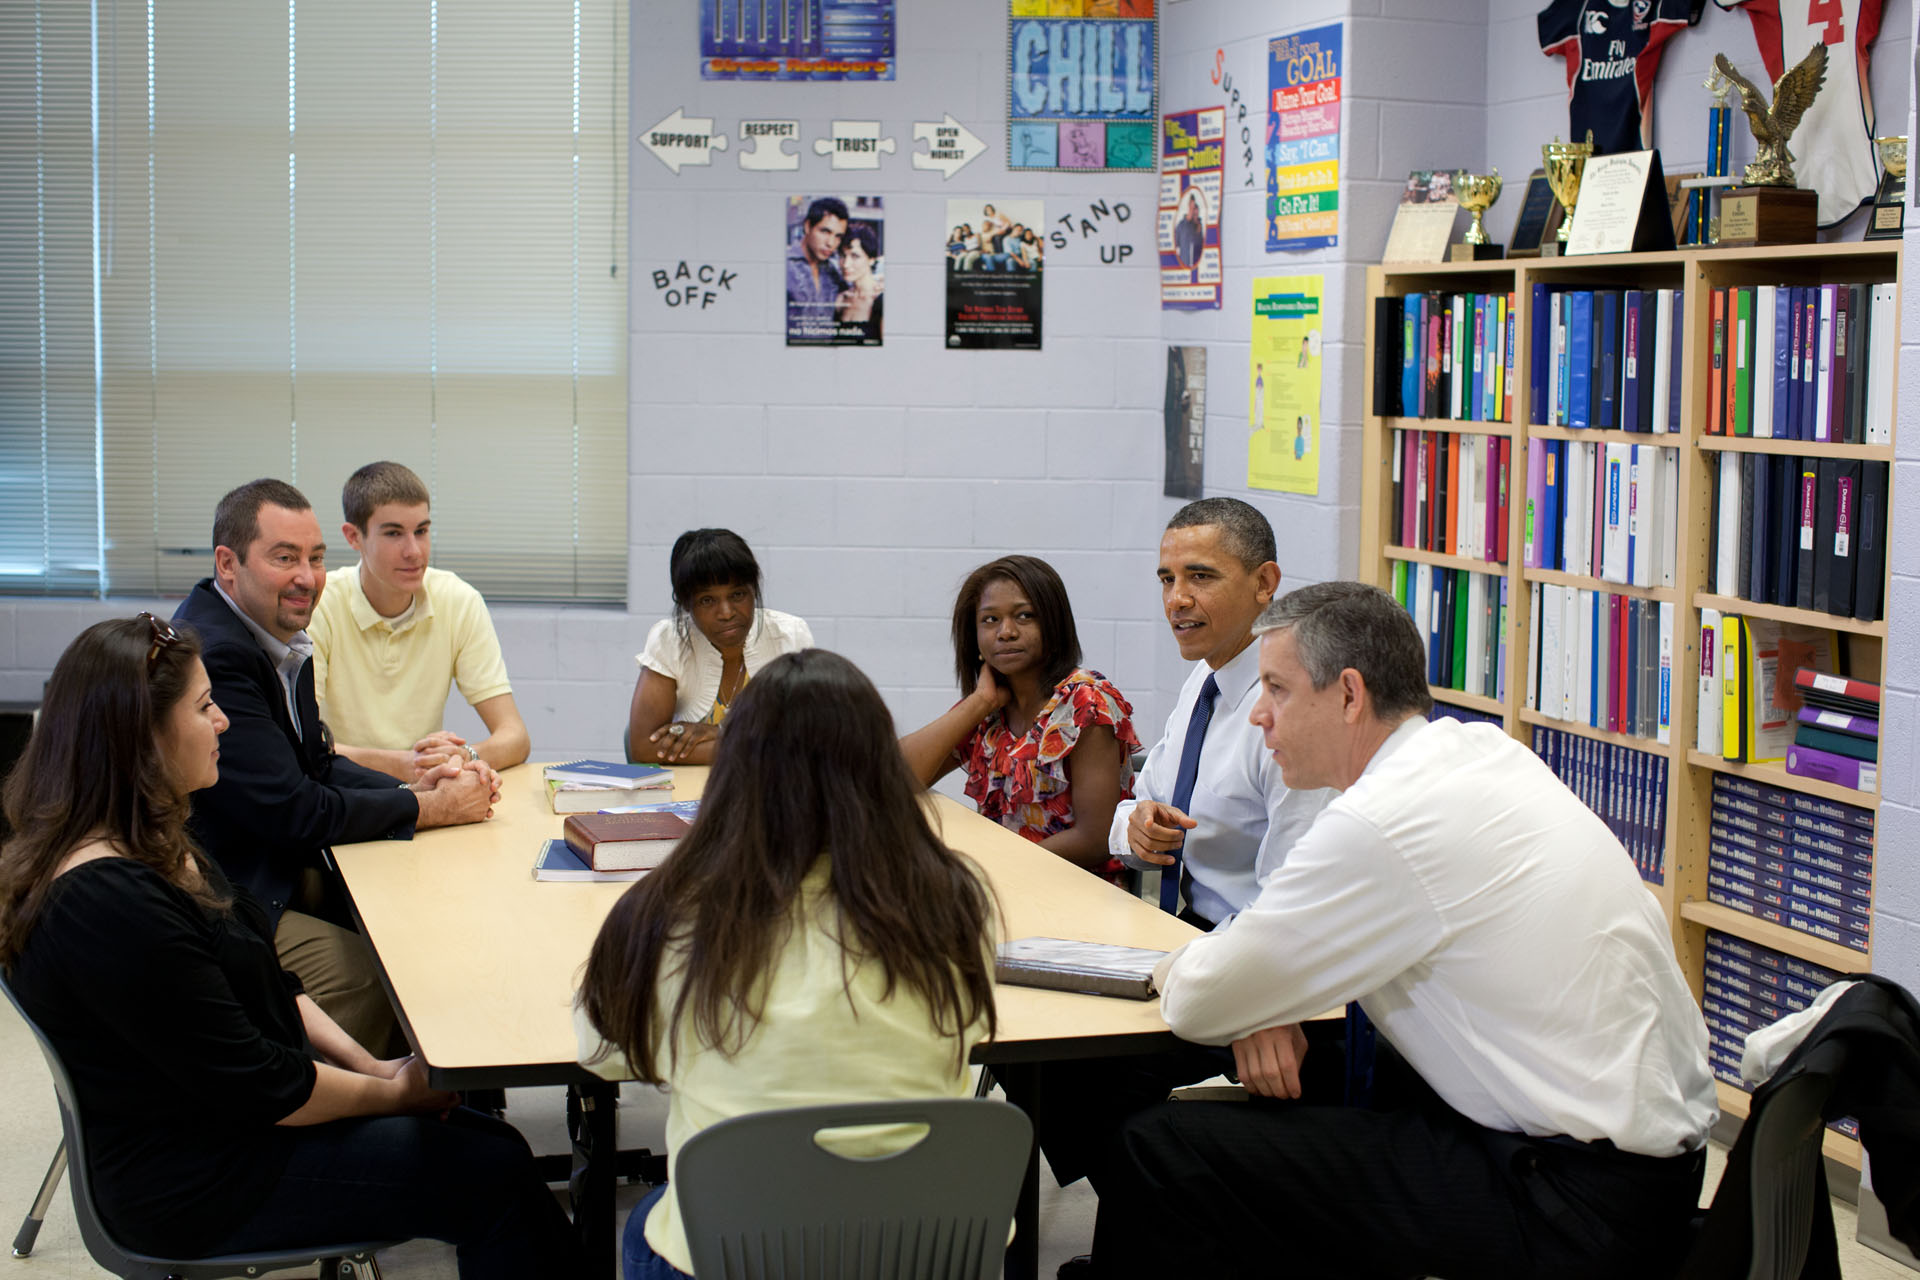 President Barack Obama and Education Secretary Arne Duncan talk with students (May 4, 2012)